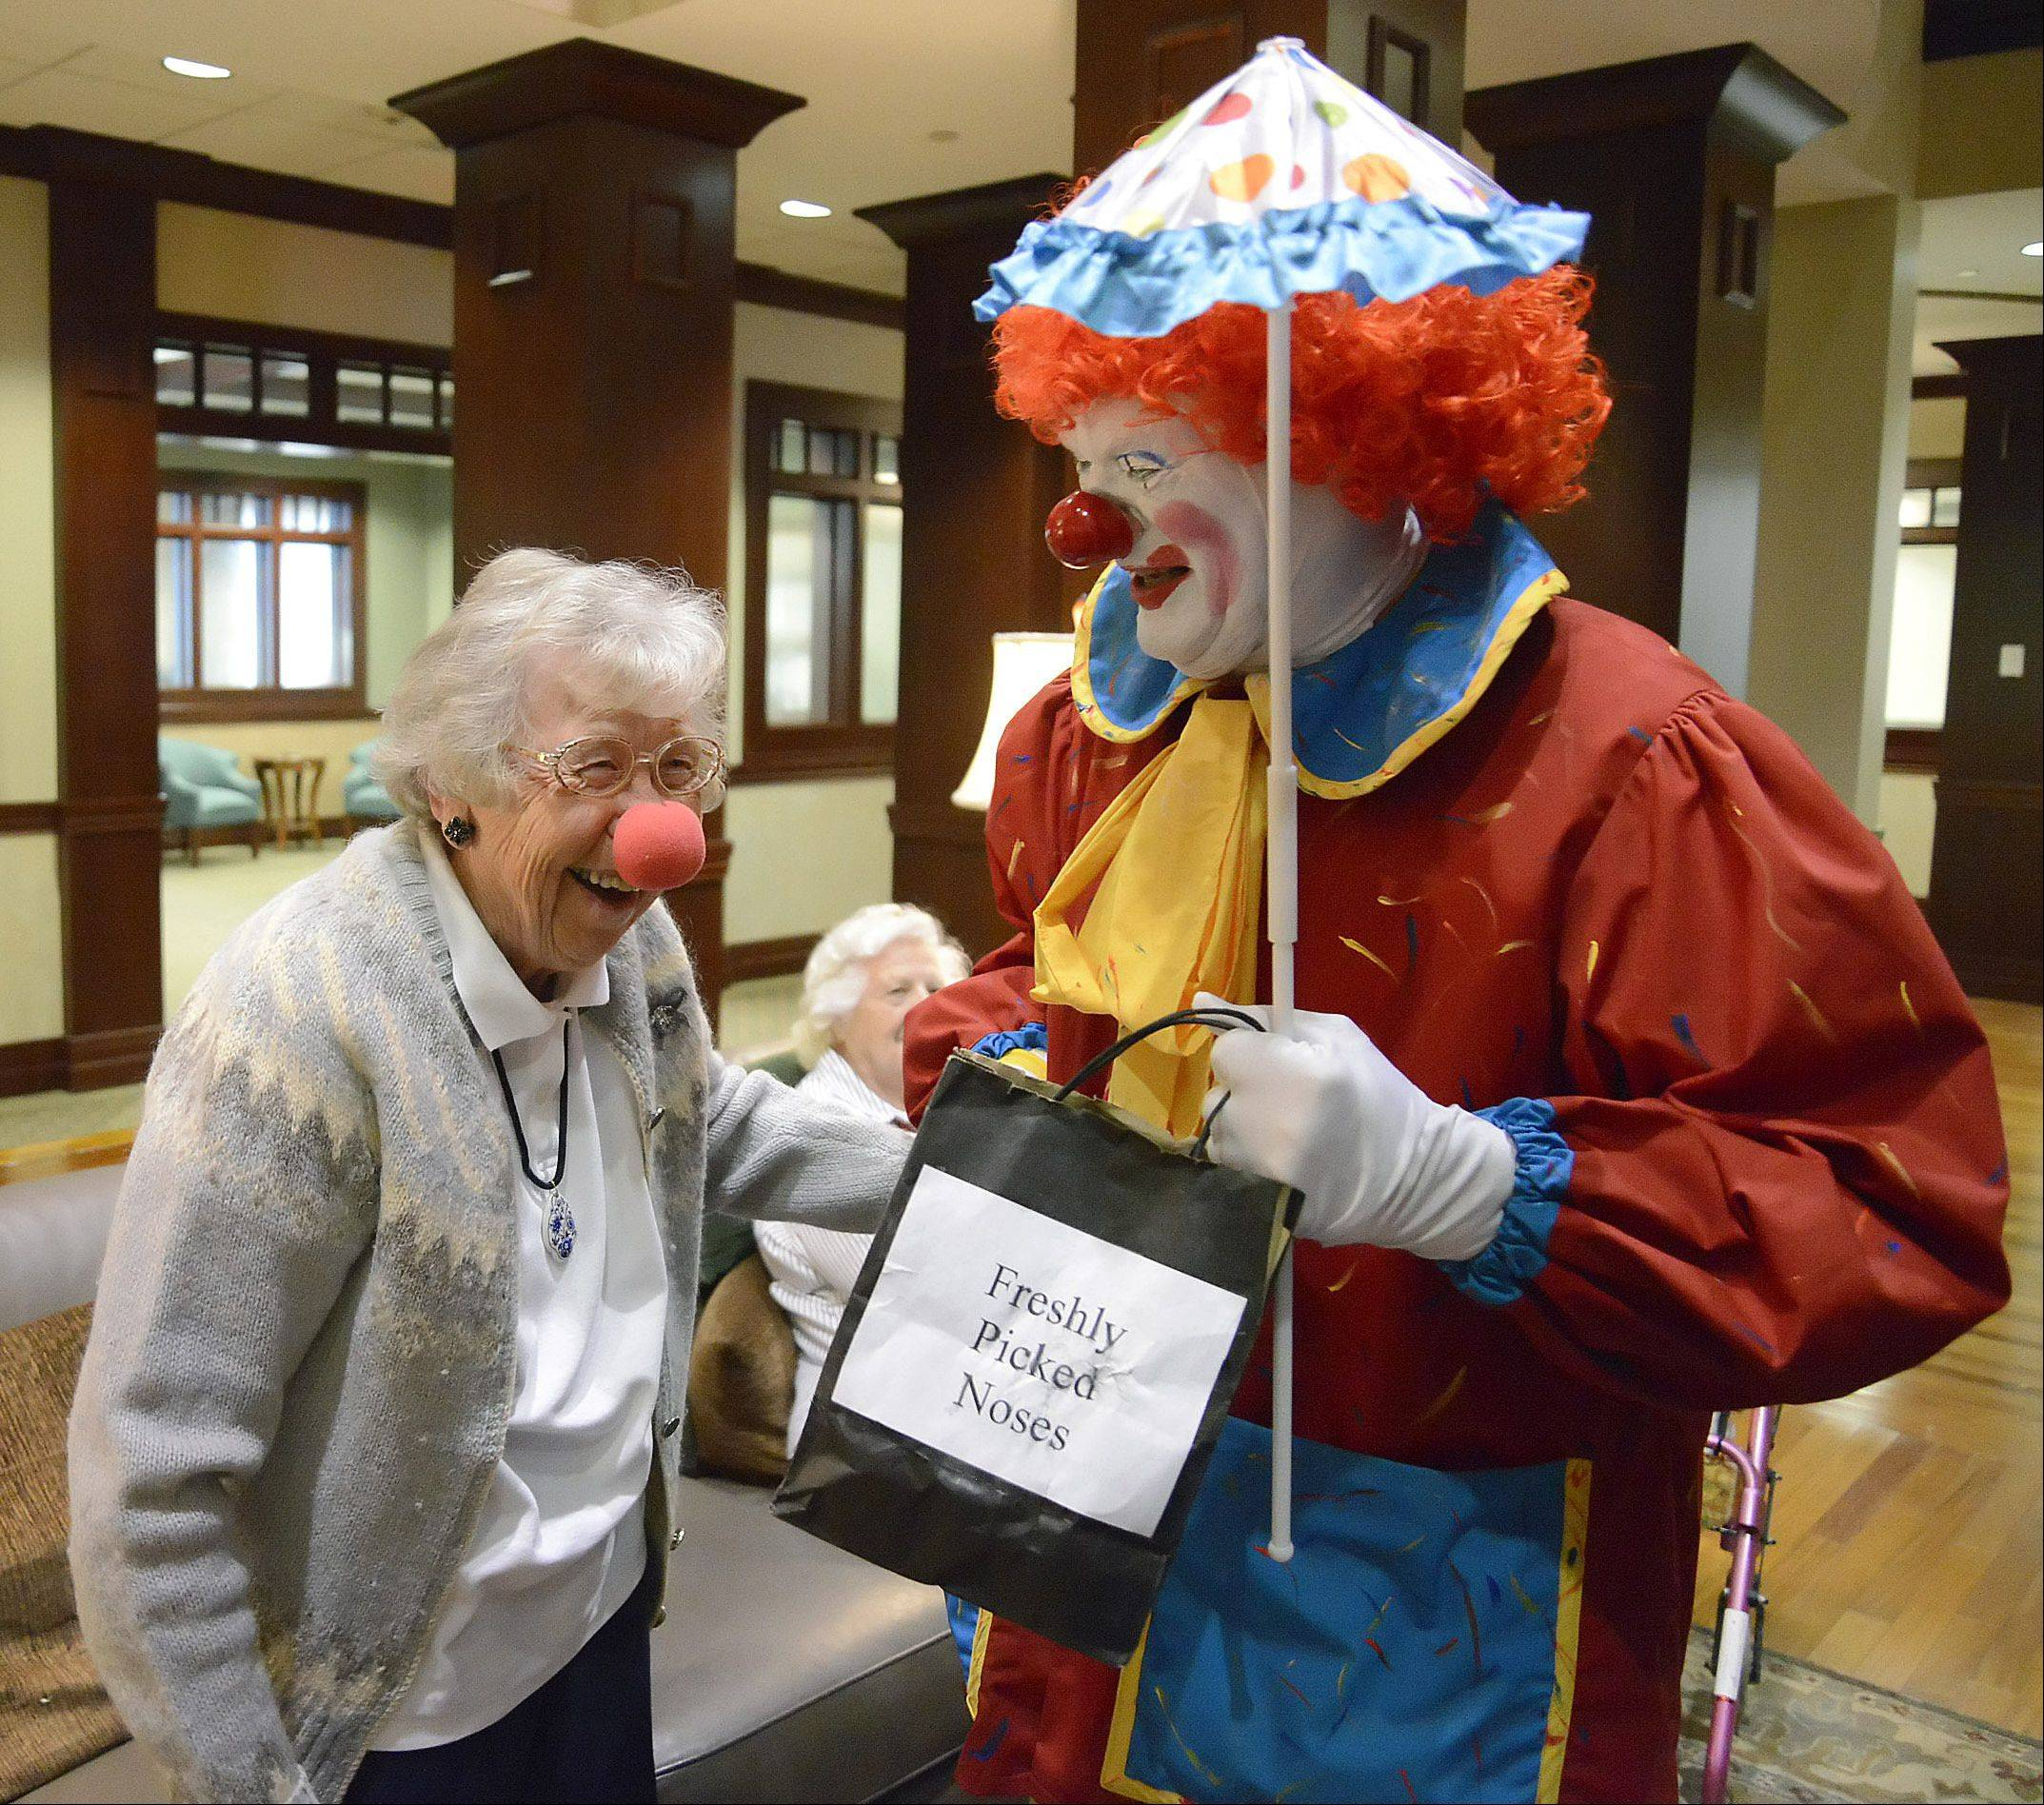 Inga Lind jokes with Polyester the clown after she received a foam nose, making her an honorary clown during a recent visit to The Holmstad in Batavia.